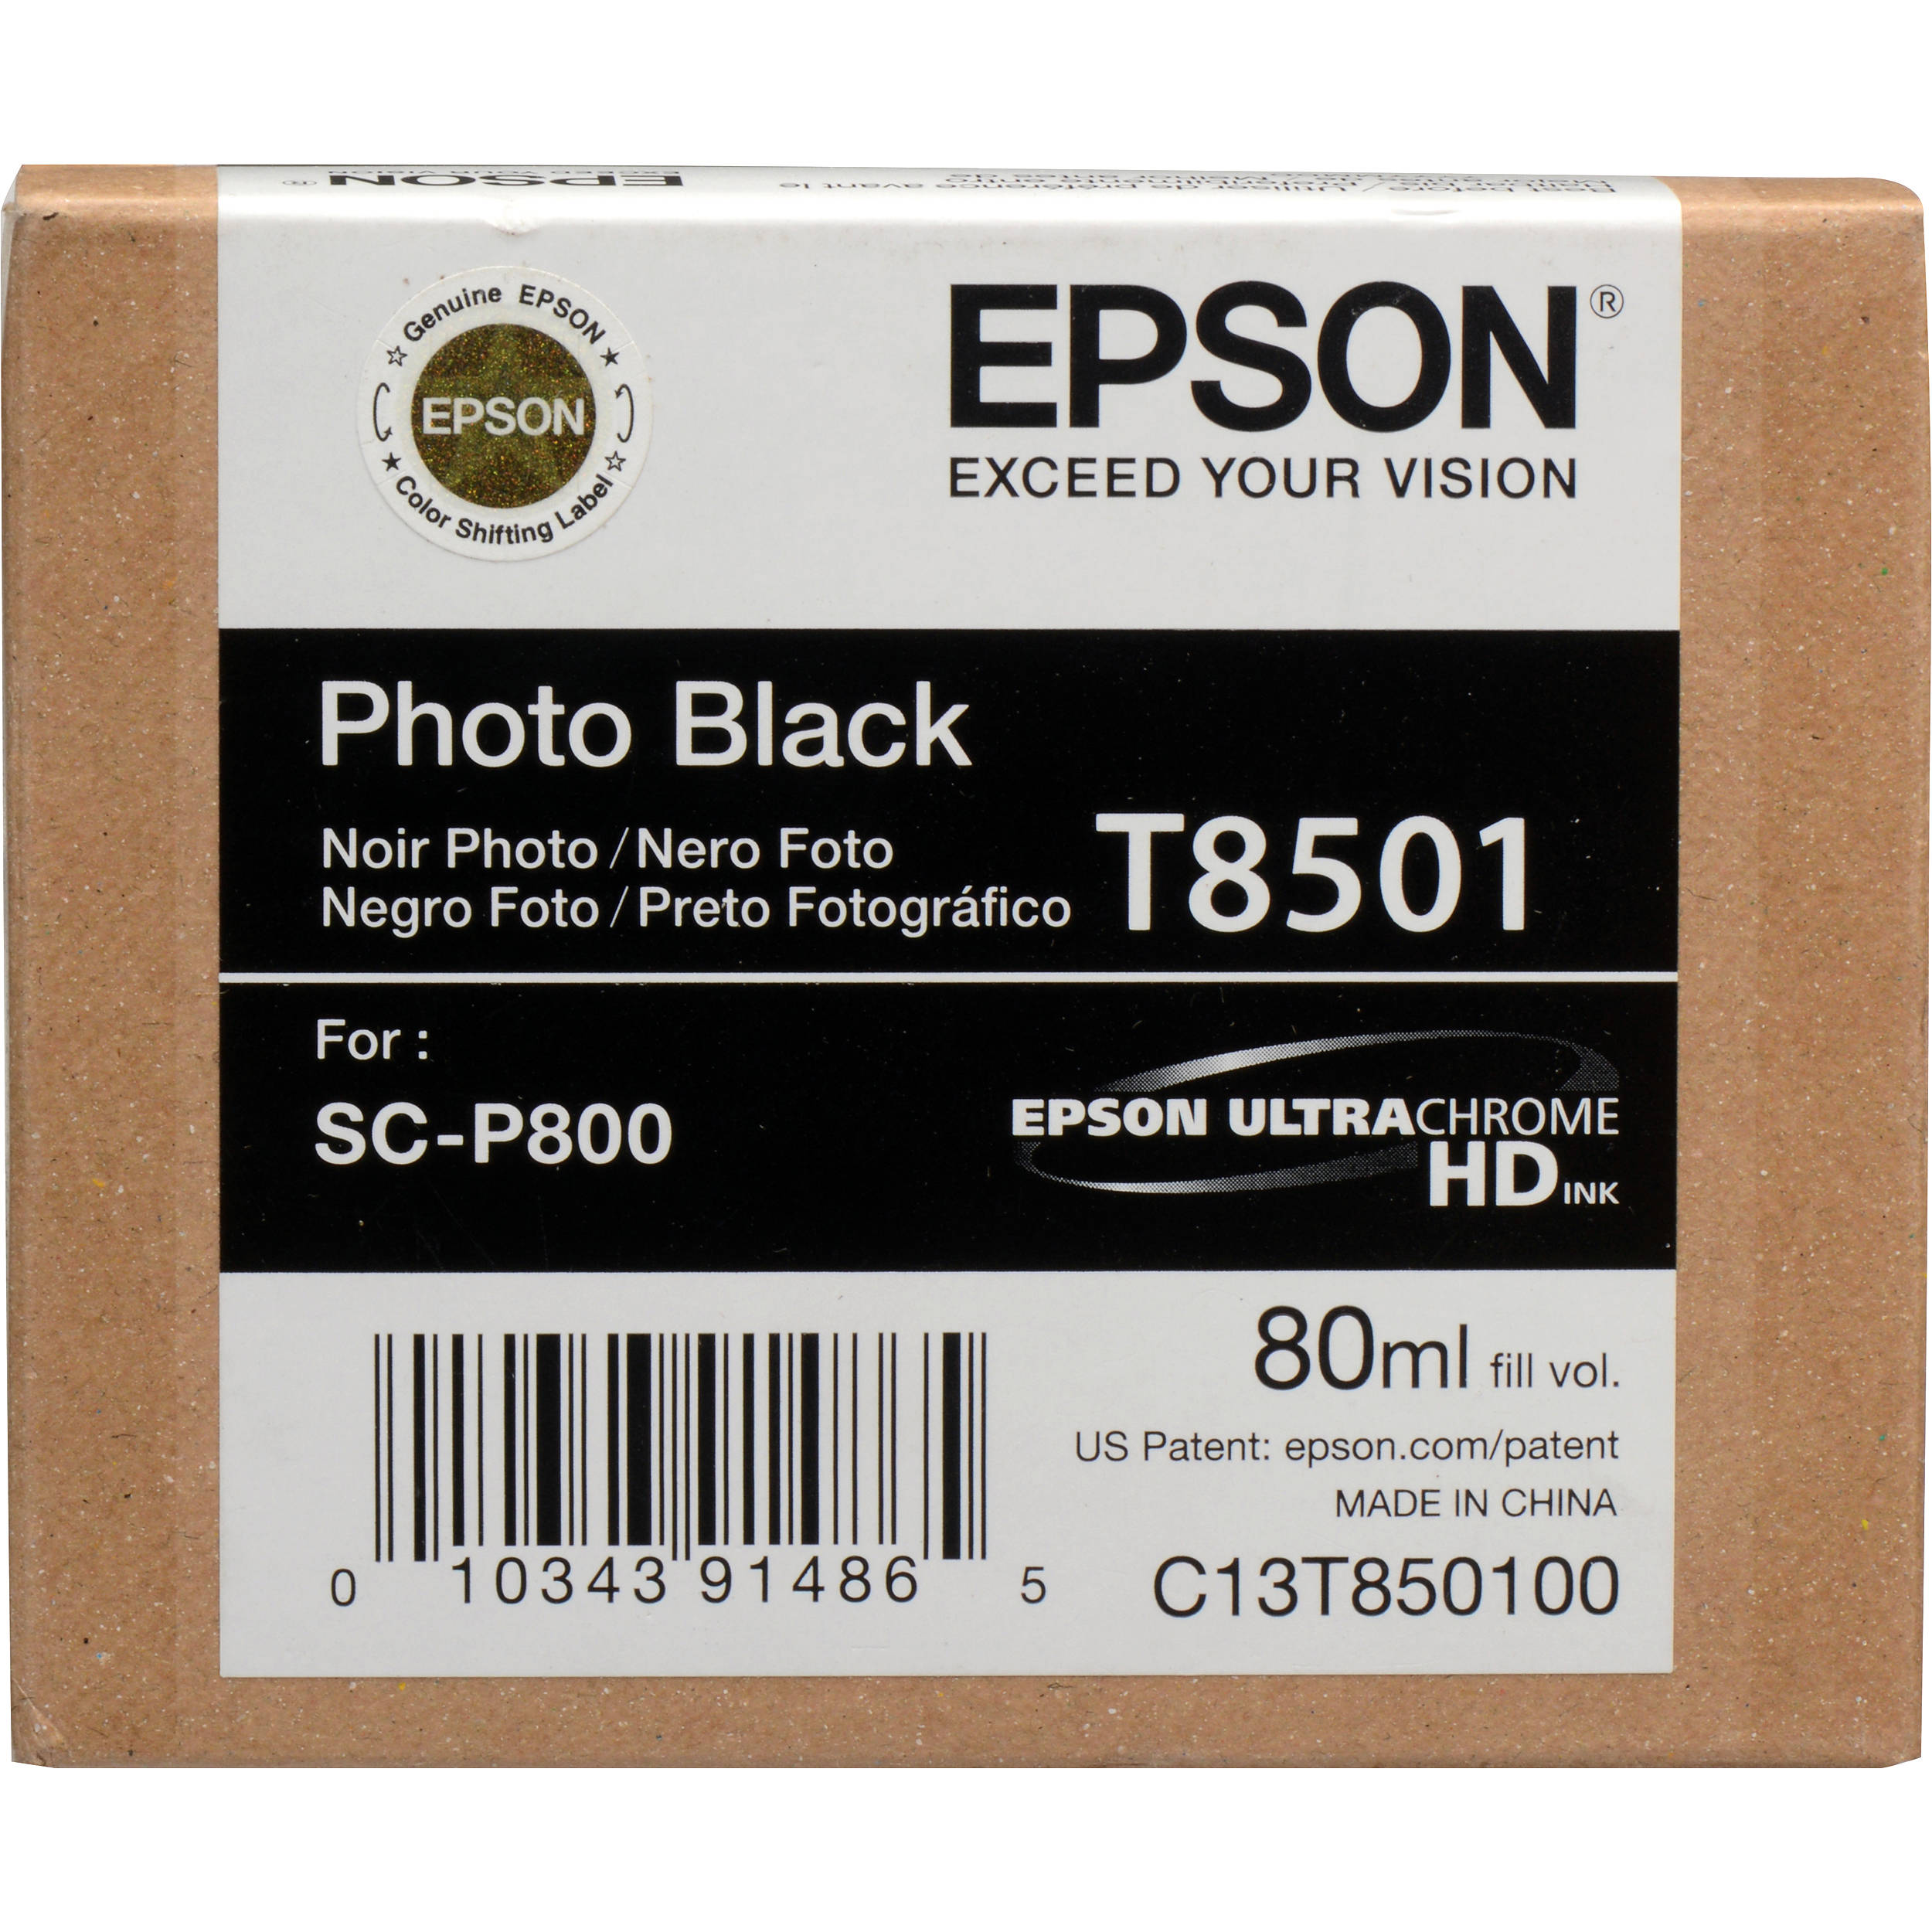 Epson T850100 Ink Cartridge - Photo Black